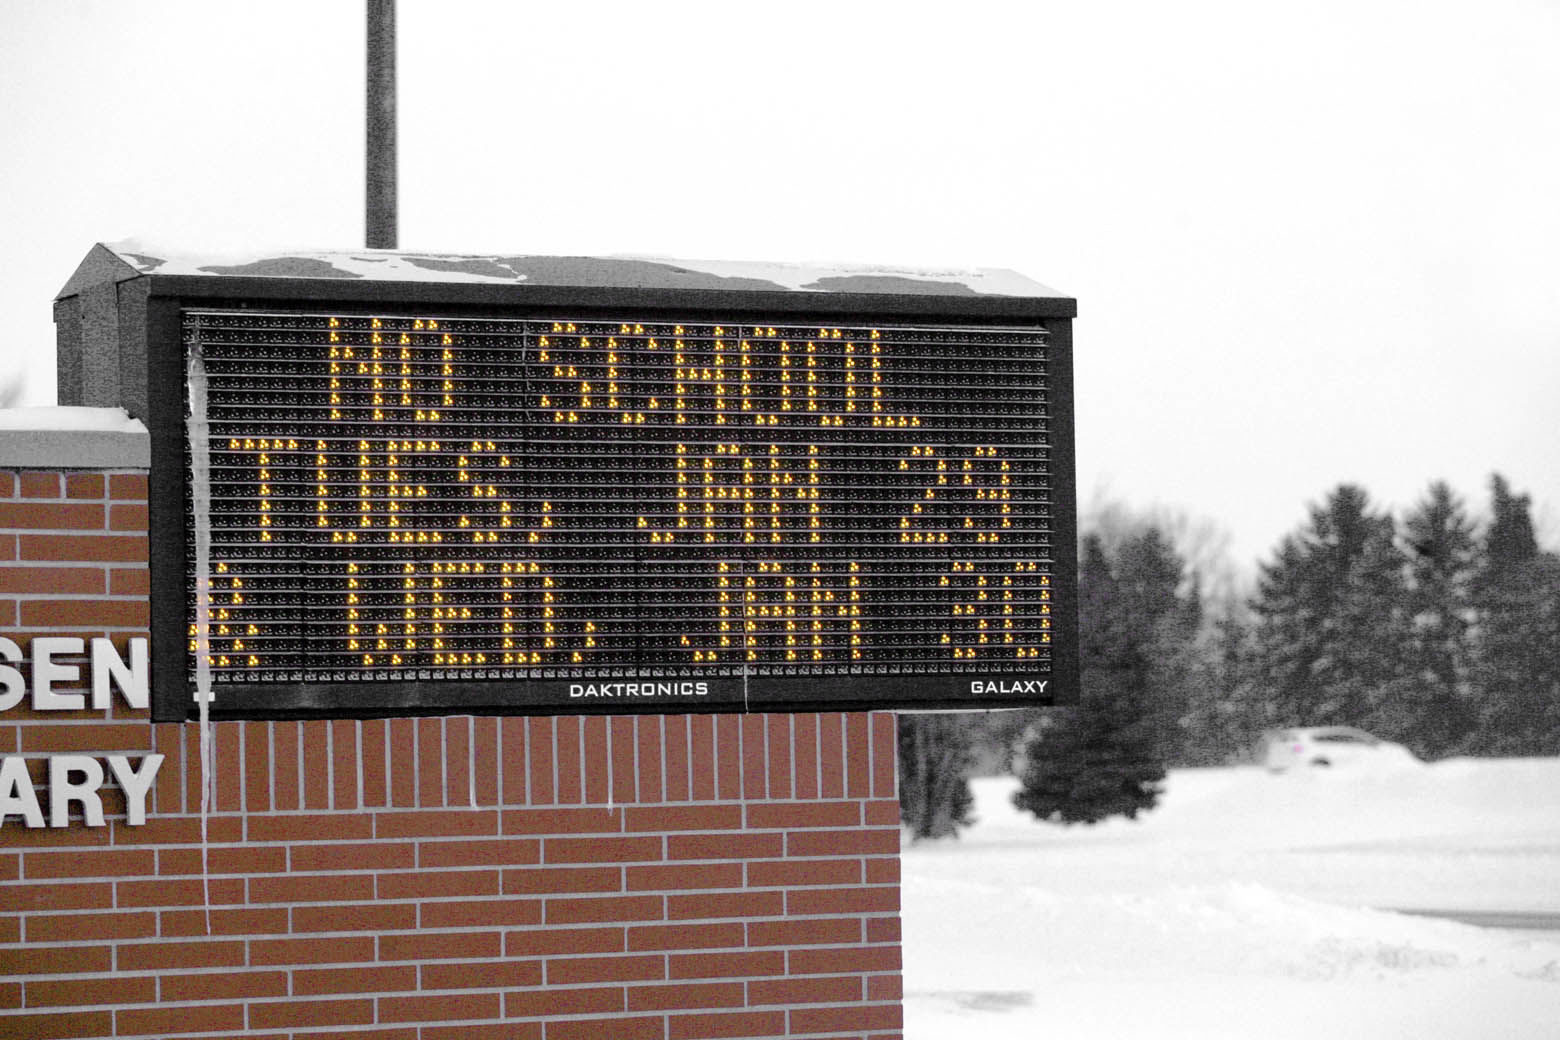 Moorhead, Minn. area elementary school electronic sign shows cancellation of school because of frigid temperature Tuesday, Jan. 29, 2019. Daytime temperatures in the Fargo-Moorhead area were near -20F as Wednesday weather will be even colder. (AP Photo/Bruce Crummy)